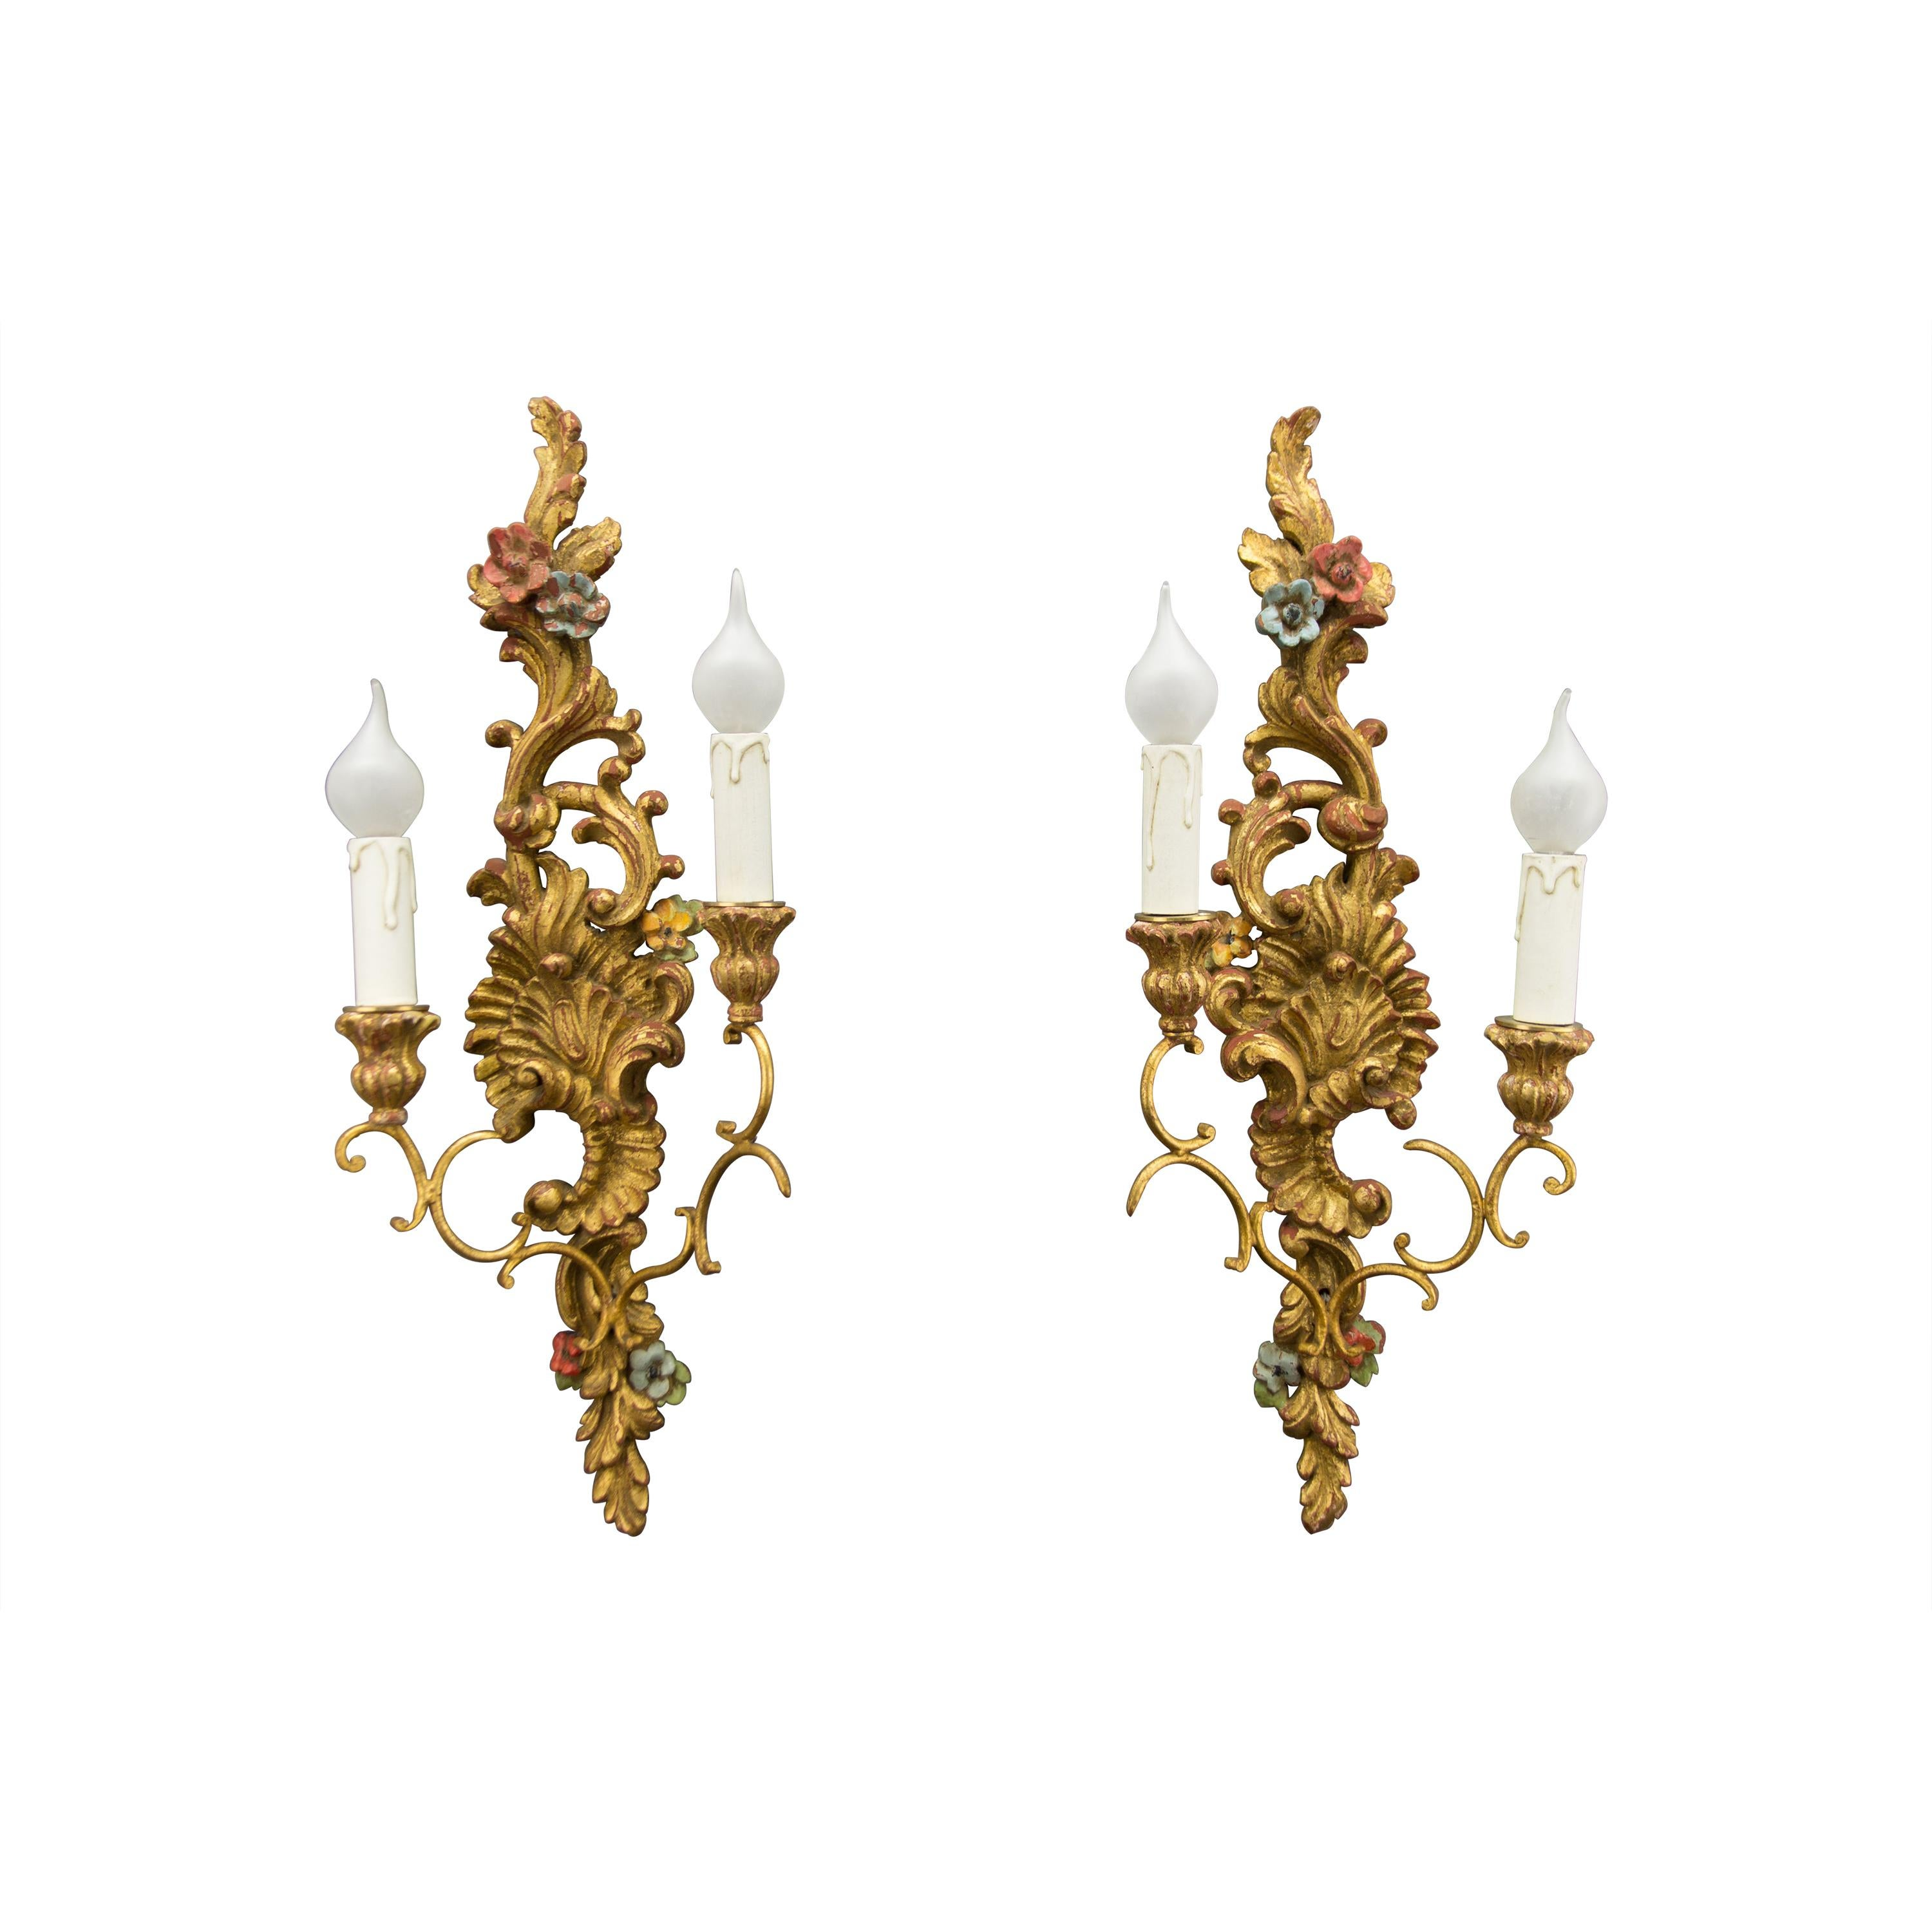 Pair of French Rococo Style Carved and Polychrome Painted Wood Sconces, 1930s